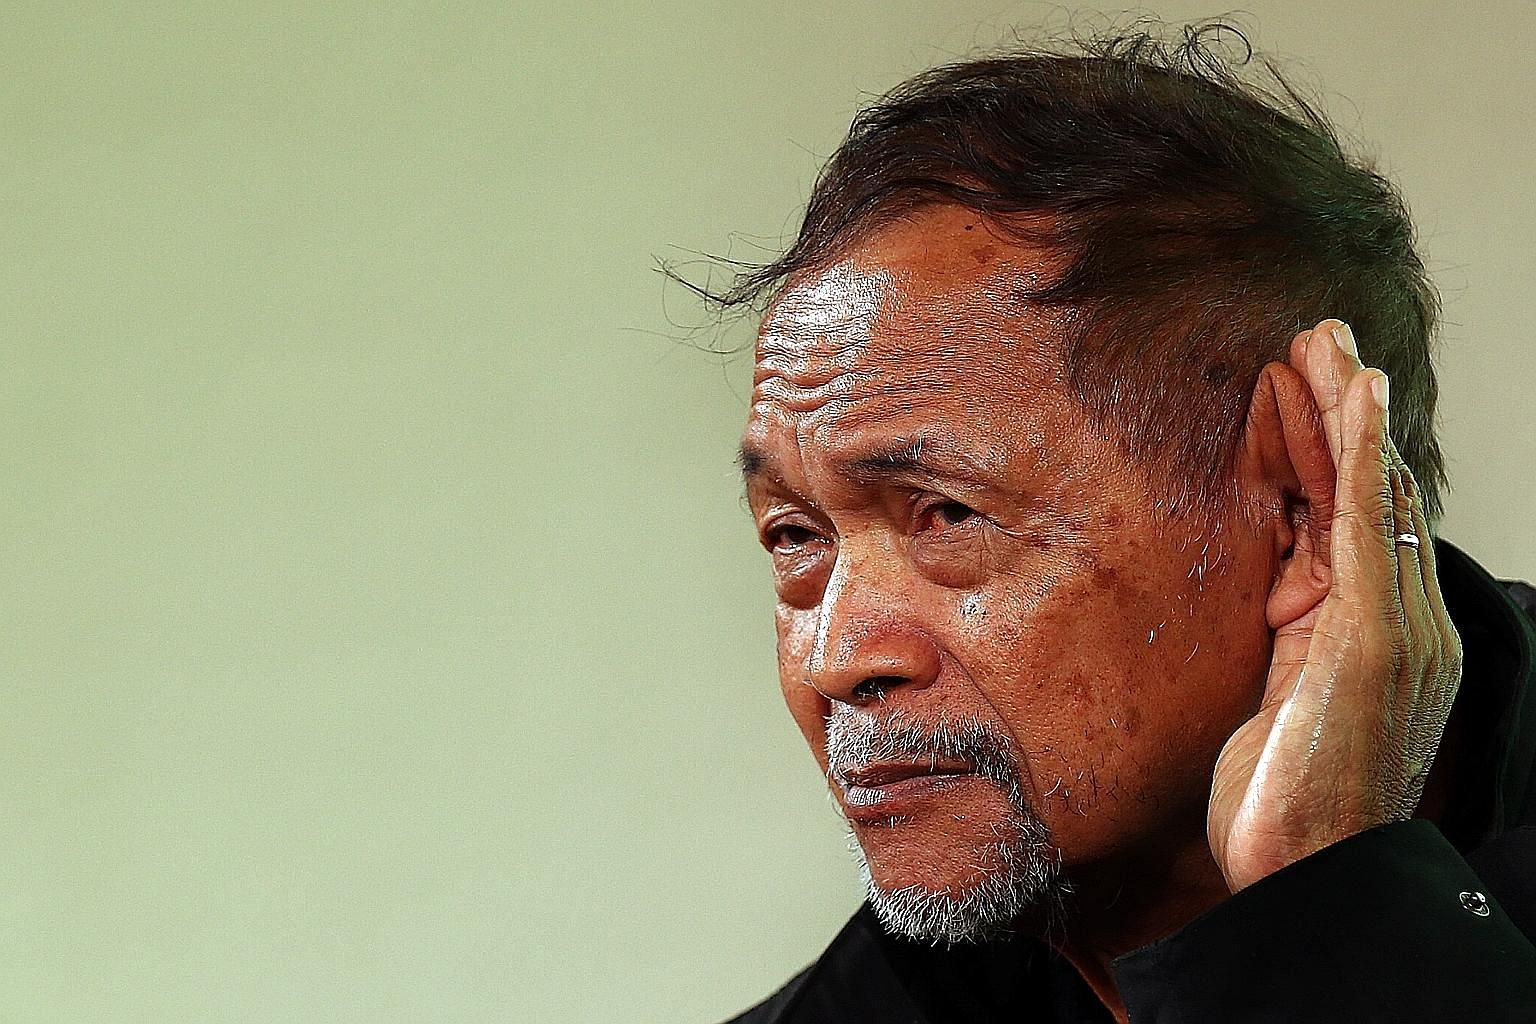 Indonesian writer and activist Goenawan Mohamad spoke with fire and surprising humour.